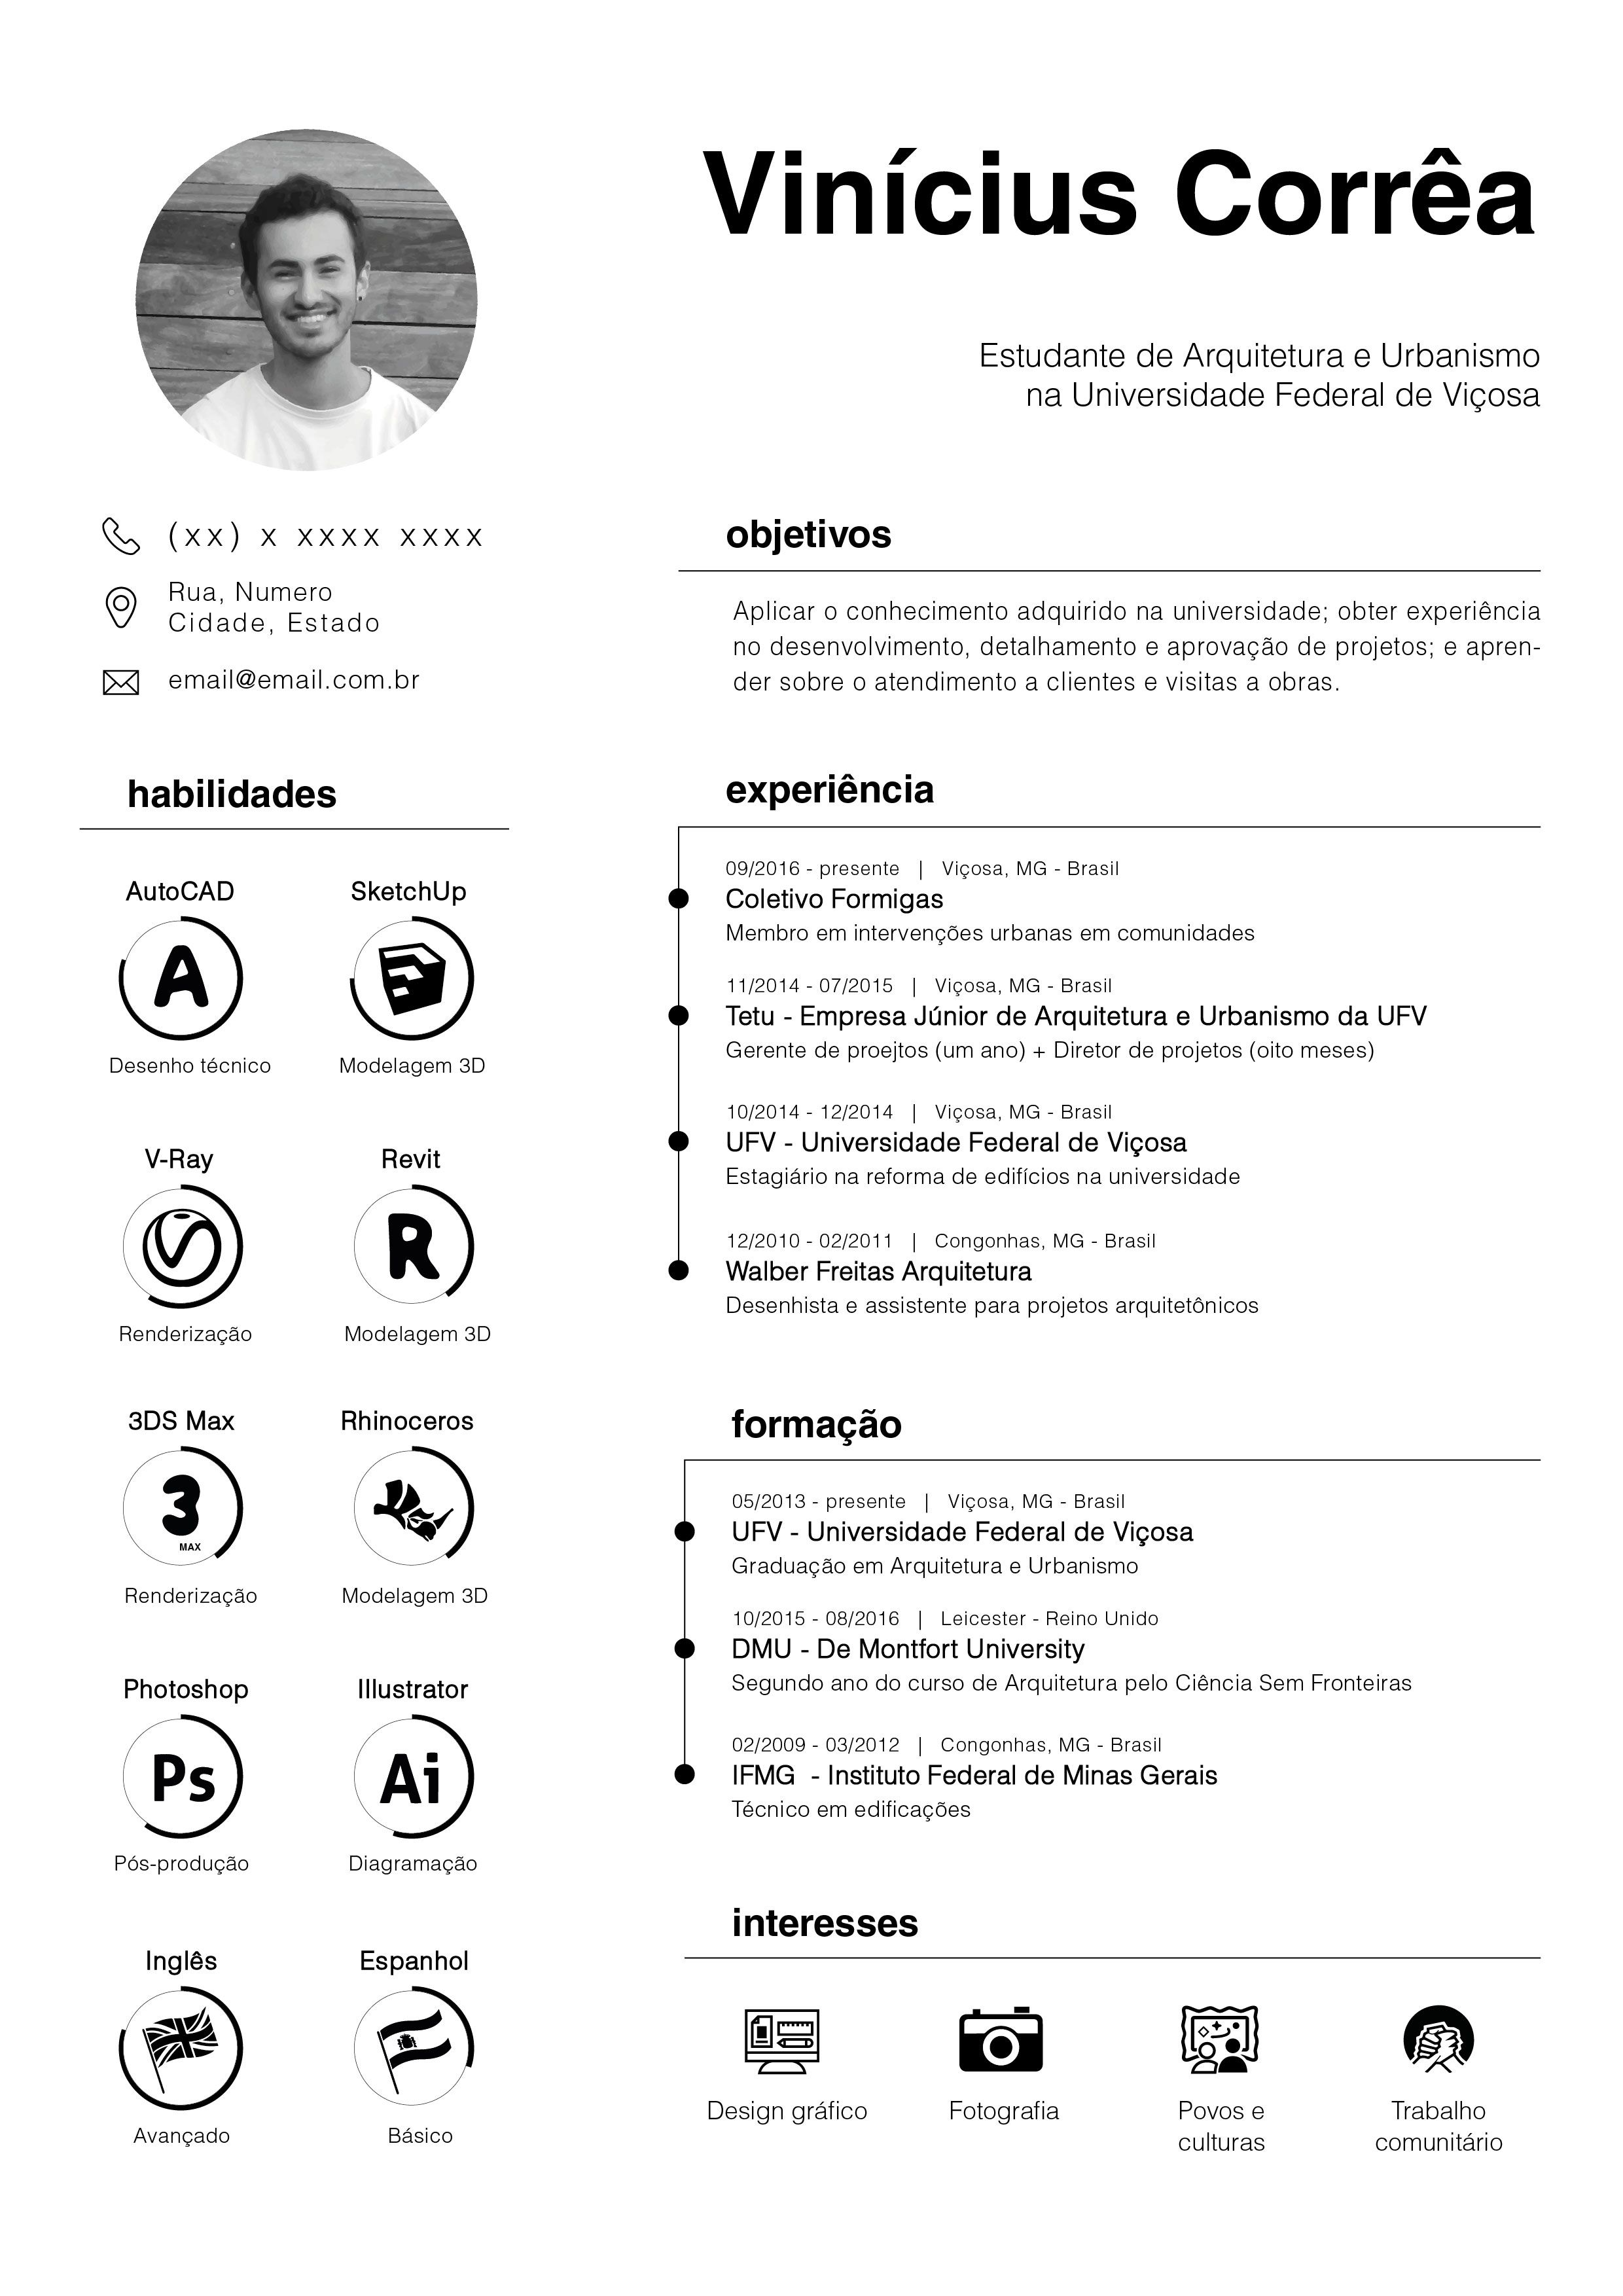 Resume curriculum vitae architecture urbanism proyectos for Cv template for architects